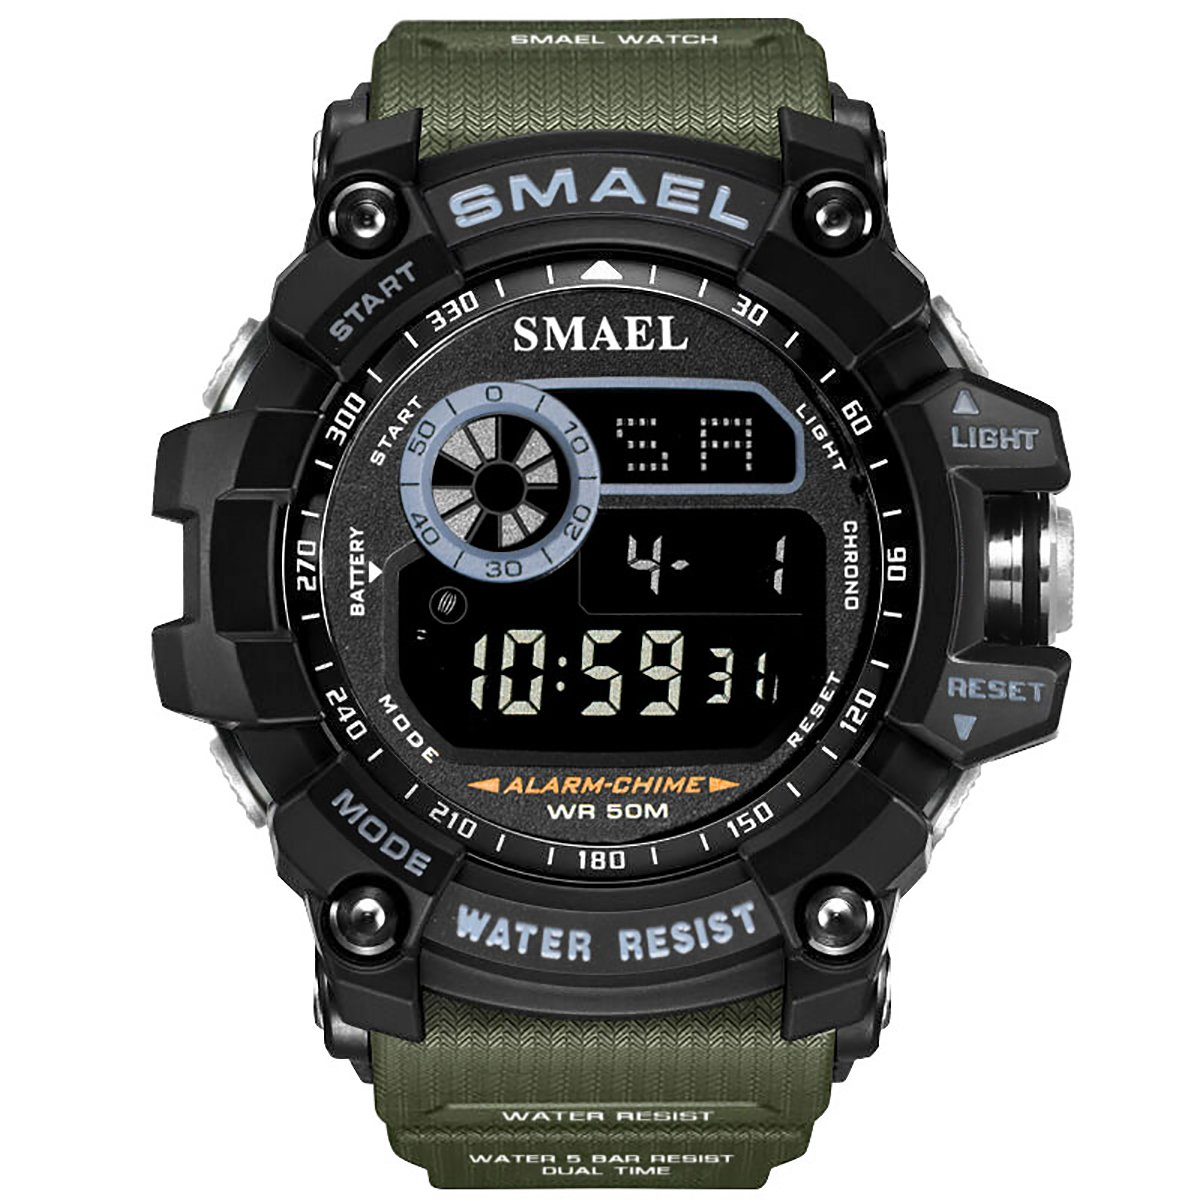 Watch VOEONS Digital Watch, 165FT Waterproof Military Running Sports Watch for Men & Boys, Outdoor Work Wrist Watch - Alarm, Stopwatch, Back Light - Army Green